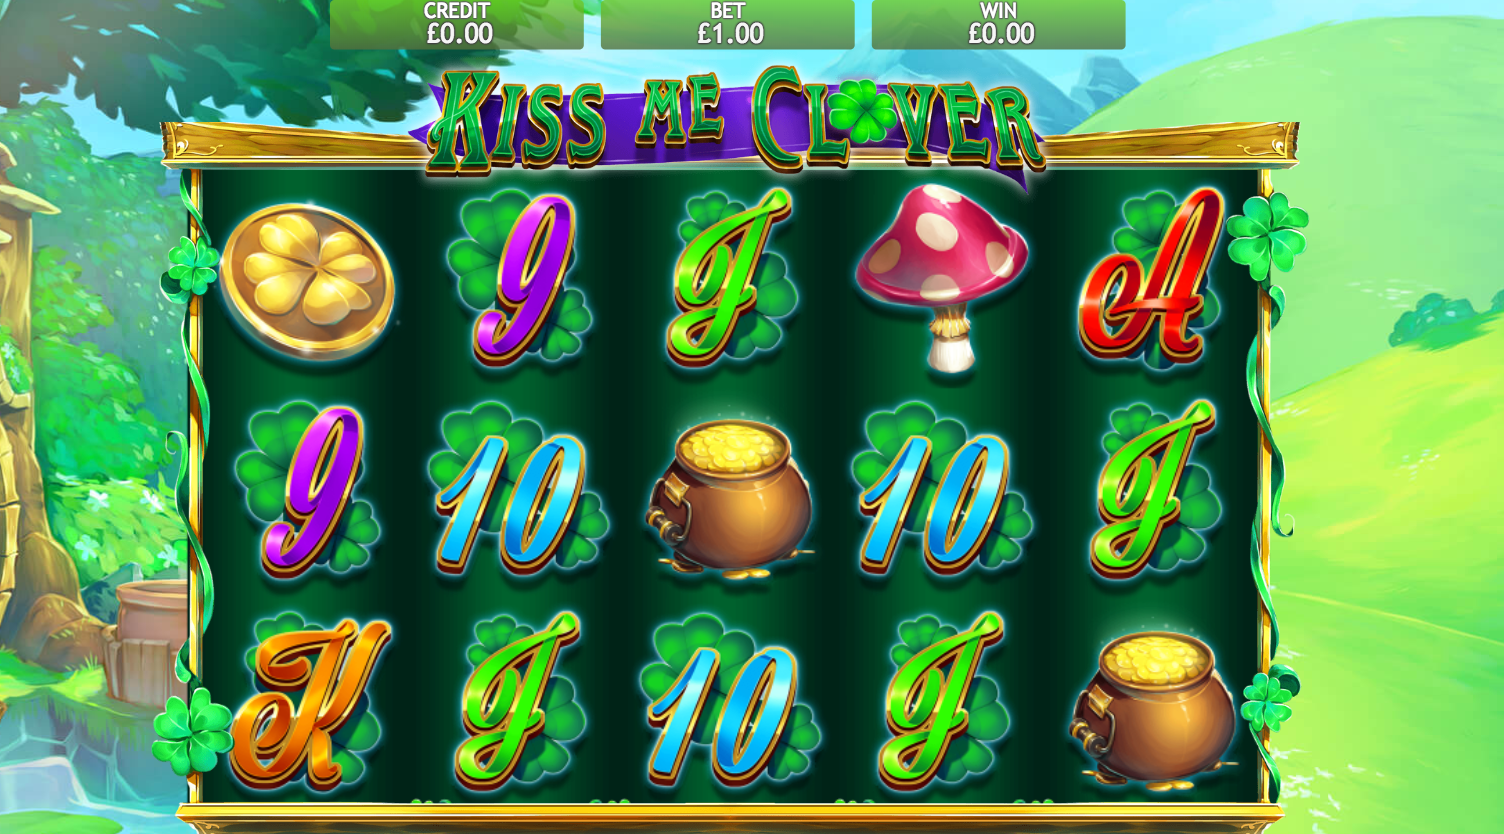 kiss me clover game slots online